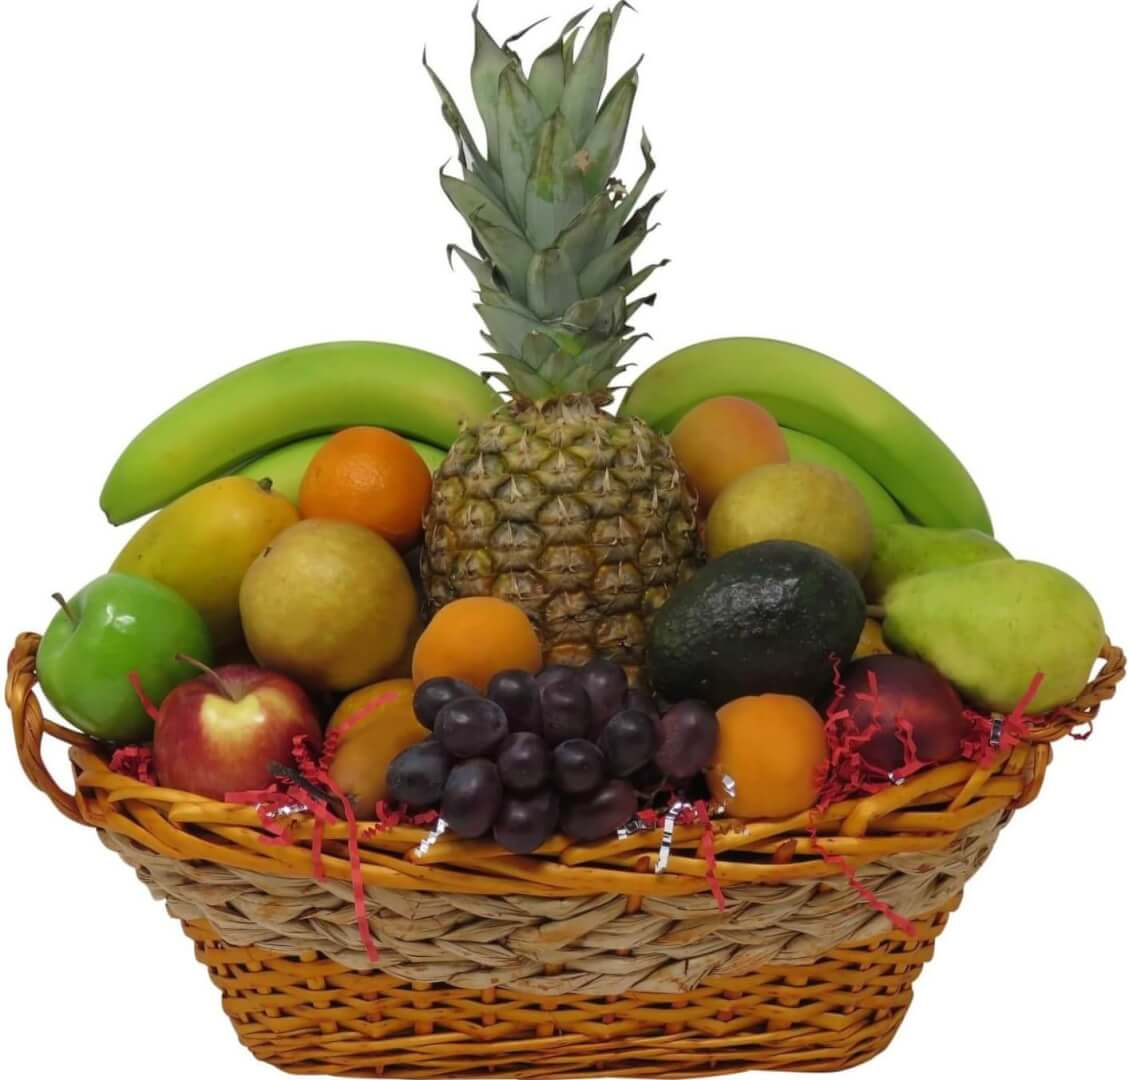 Christmas Gift Baskets Montreal: Fruit Baskets In Montreal